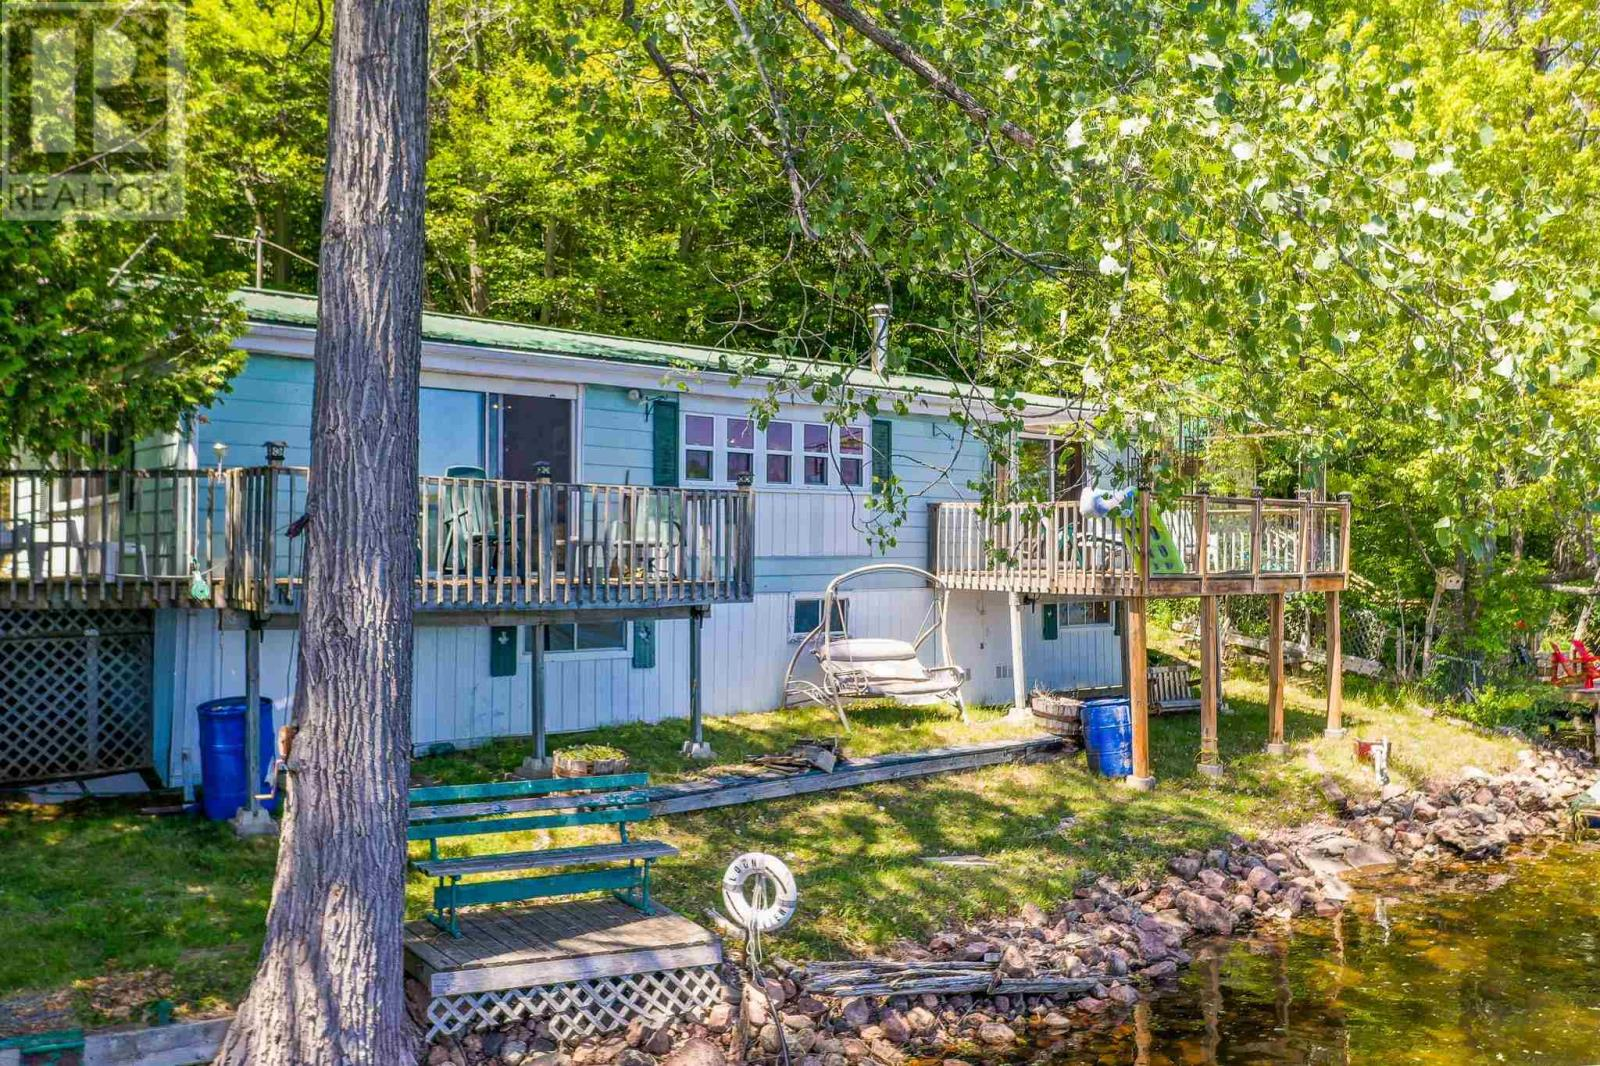 Property Listing: 418 Hickey Ln, South Frontenac, Ontario